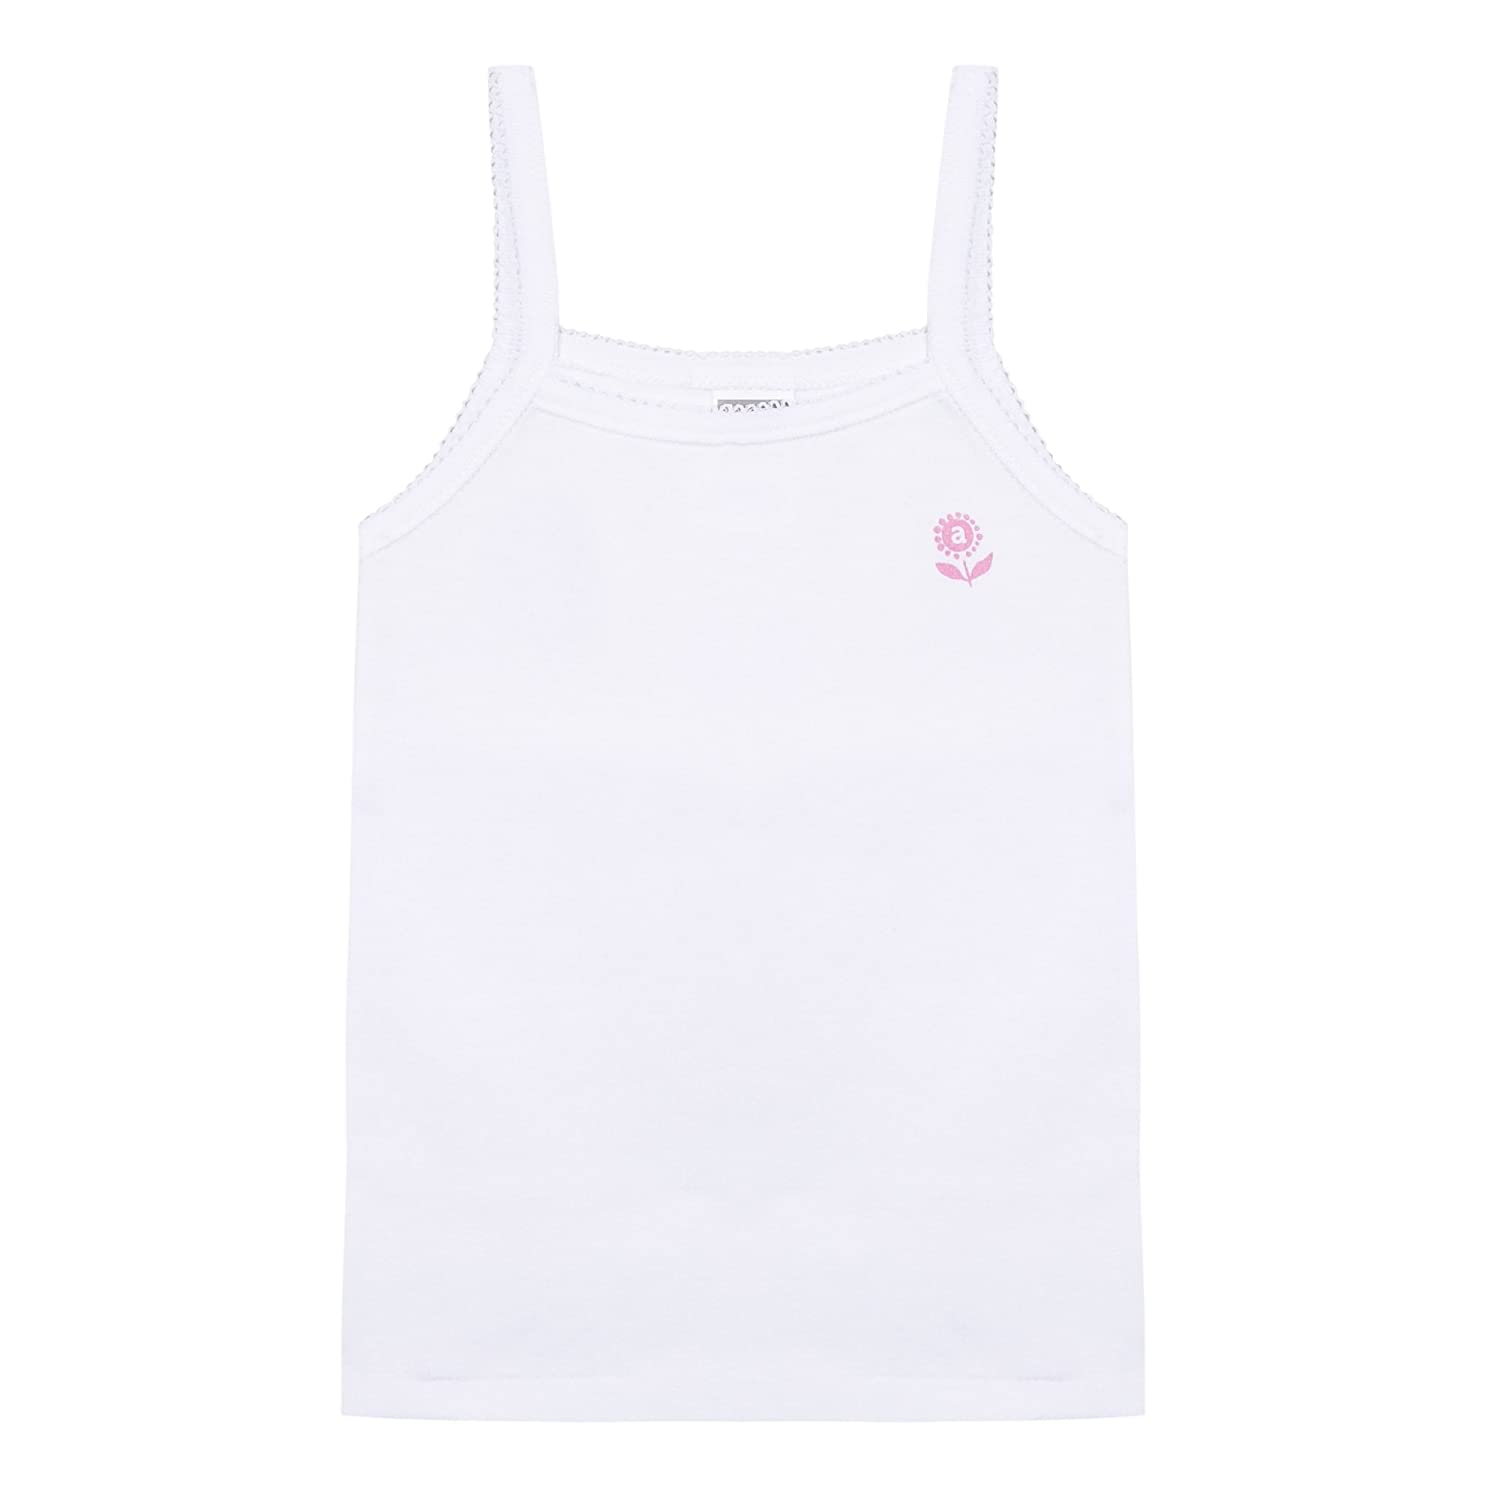 Absorba Underwear Girl's Guimpe Basic Bio Marguerite Tank Top White (Blanc 1) 9 Years 6L68003-RA